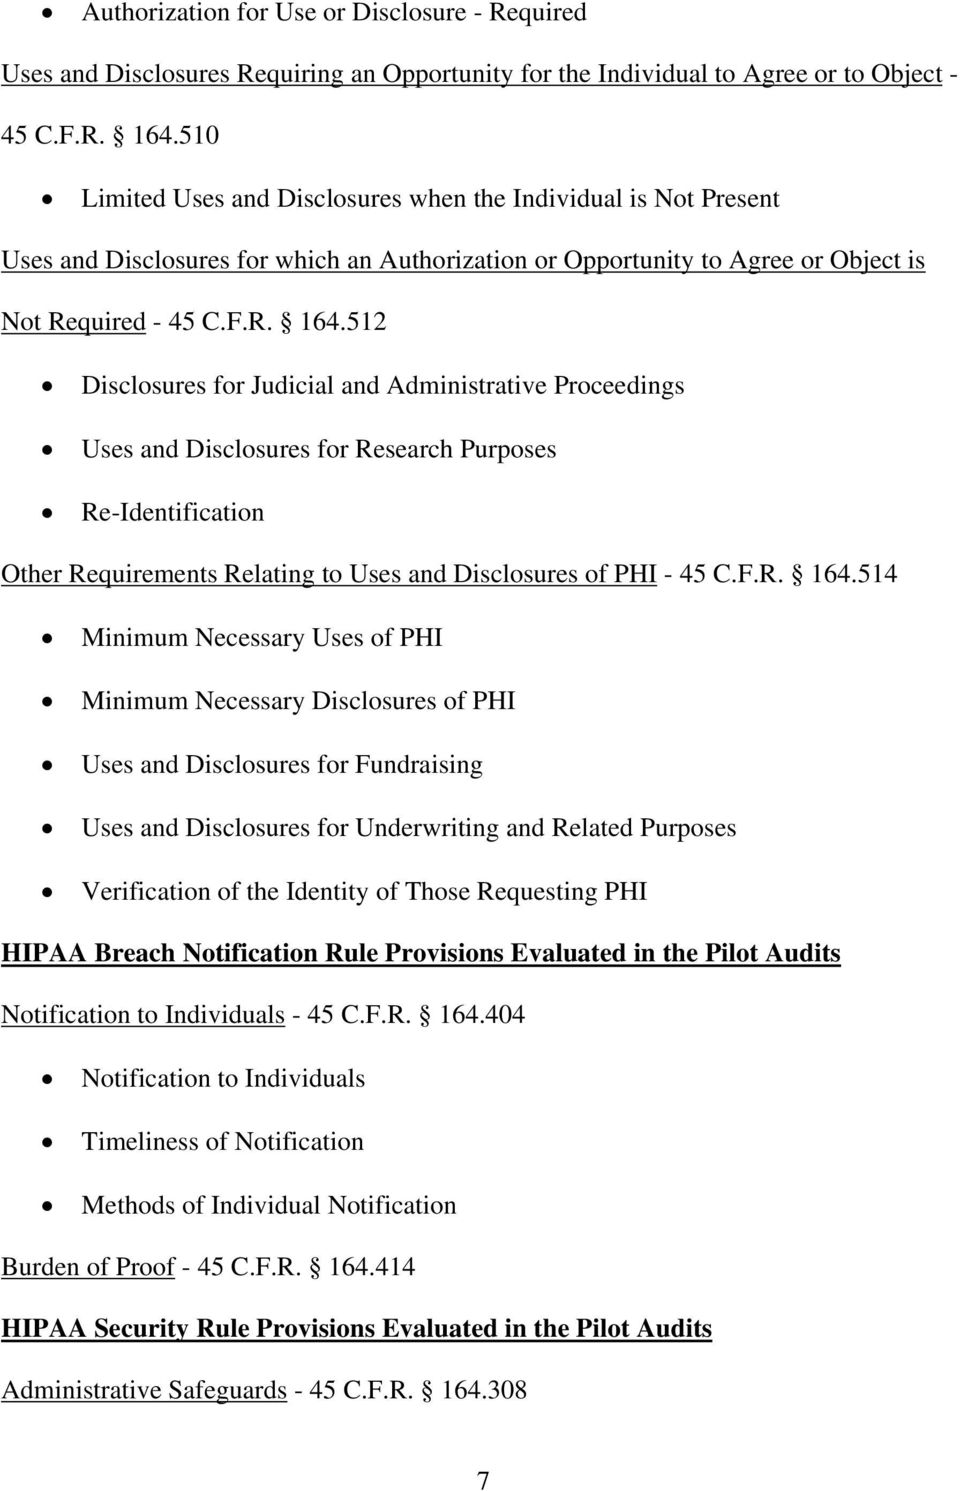 512 Disclosures for Judicial and Administrative Proceedings Uses and Disclosures for Research Purposes Re-Identification Other Requirements Relating to Uses and Disclosures of PHI - 45 C.F.R. 164.